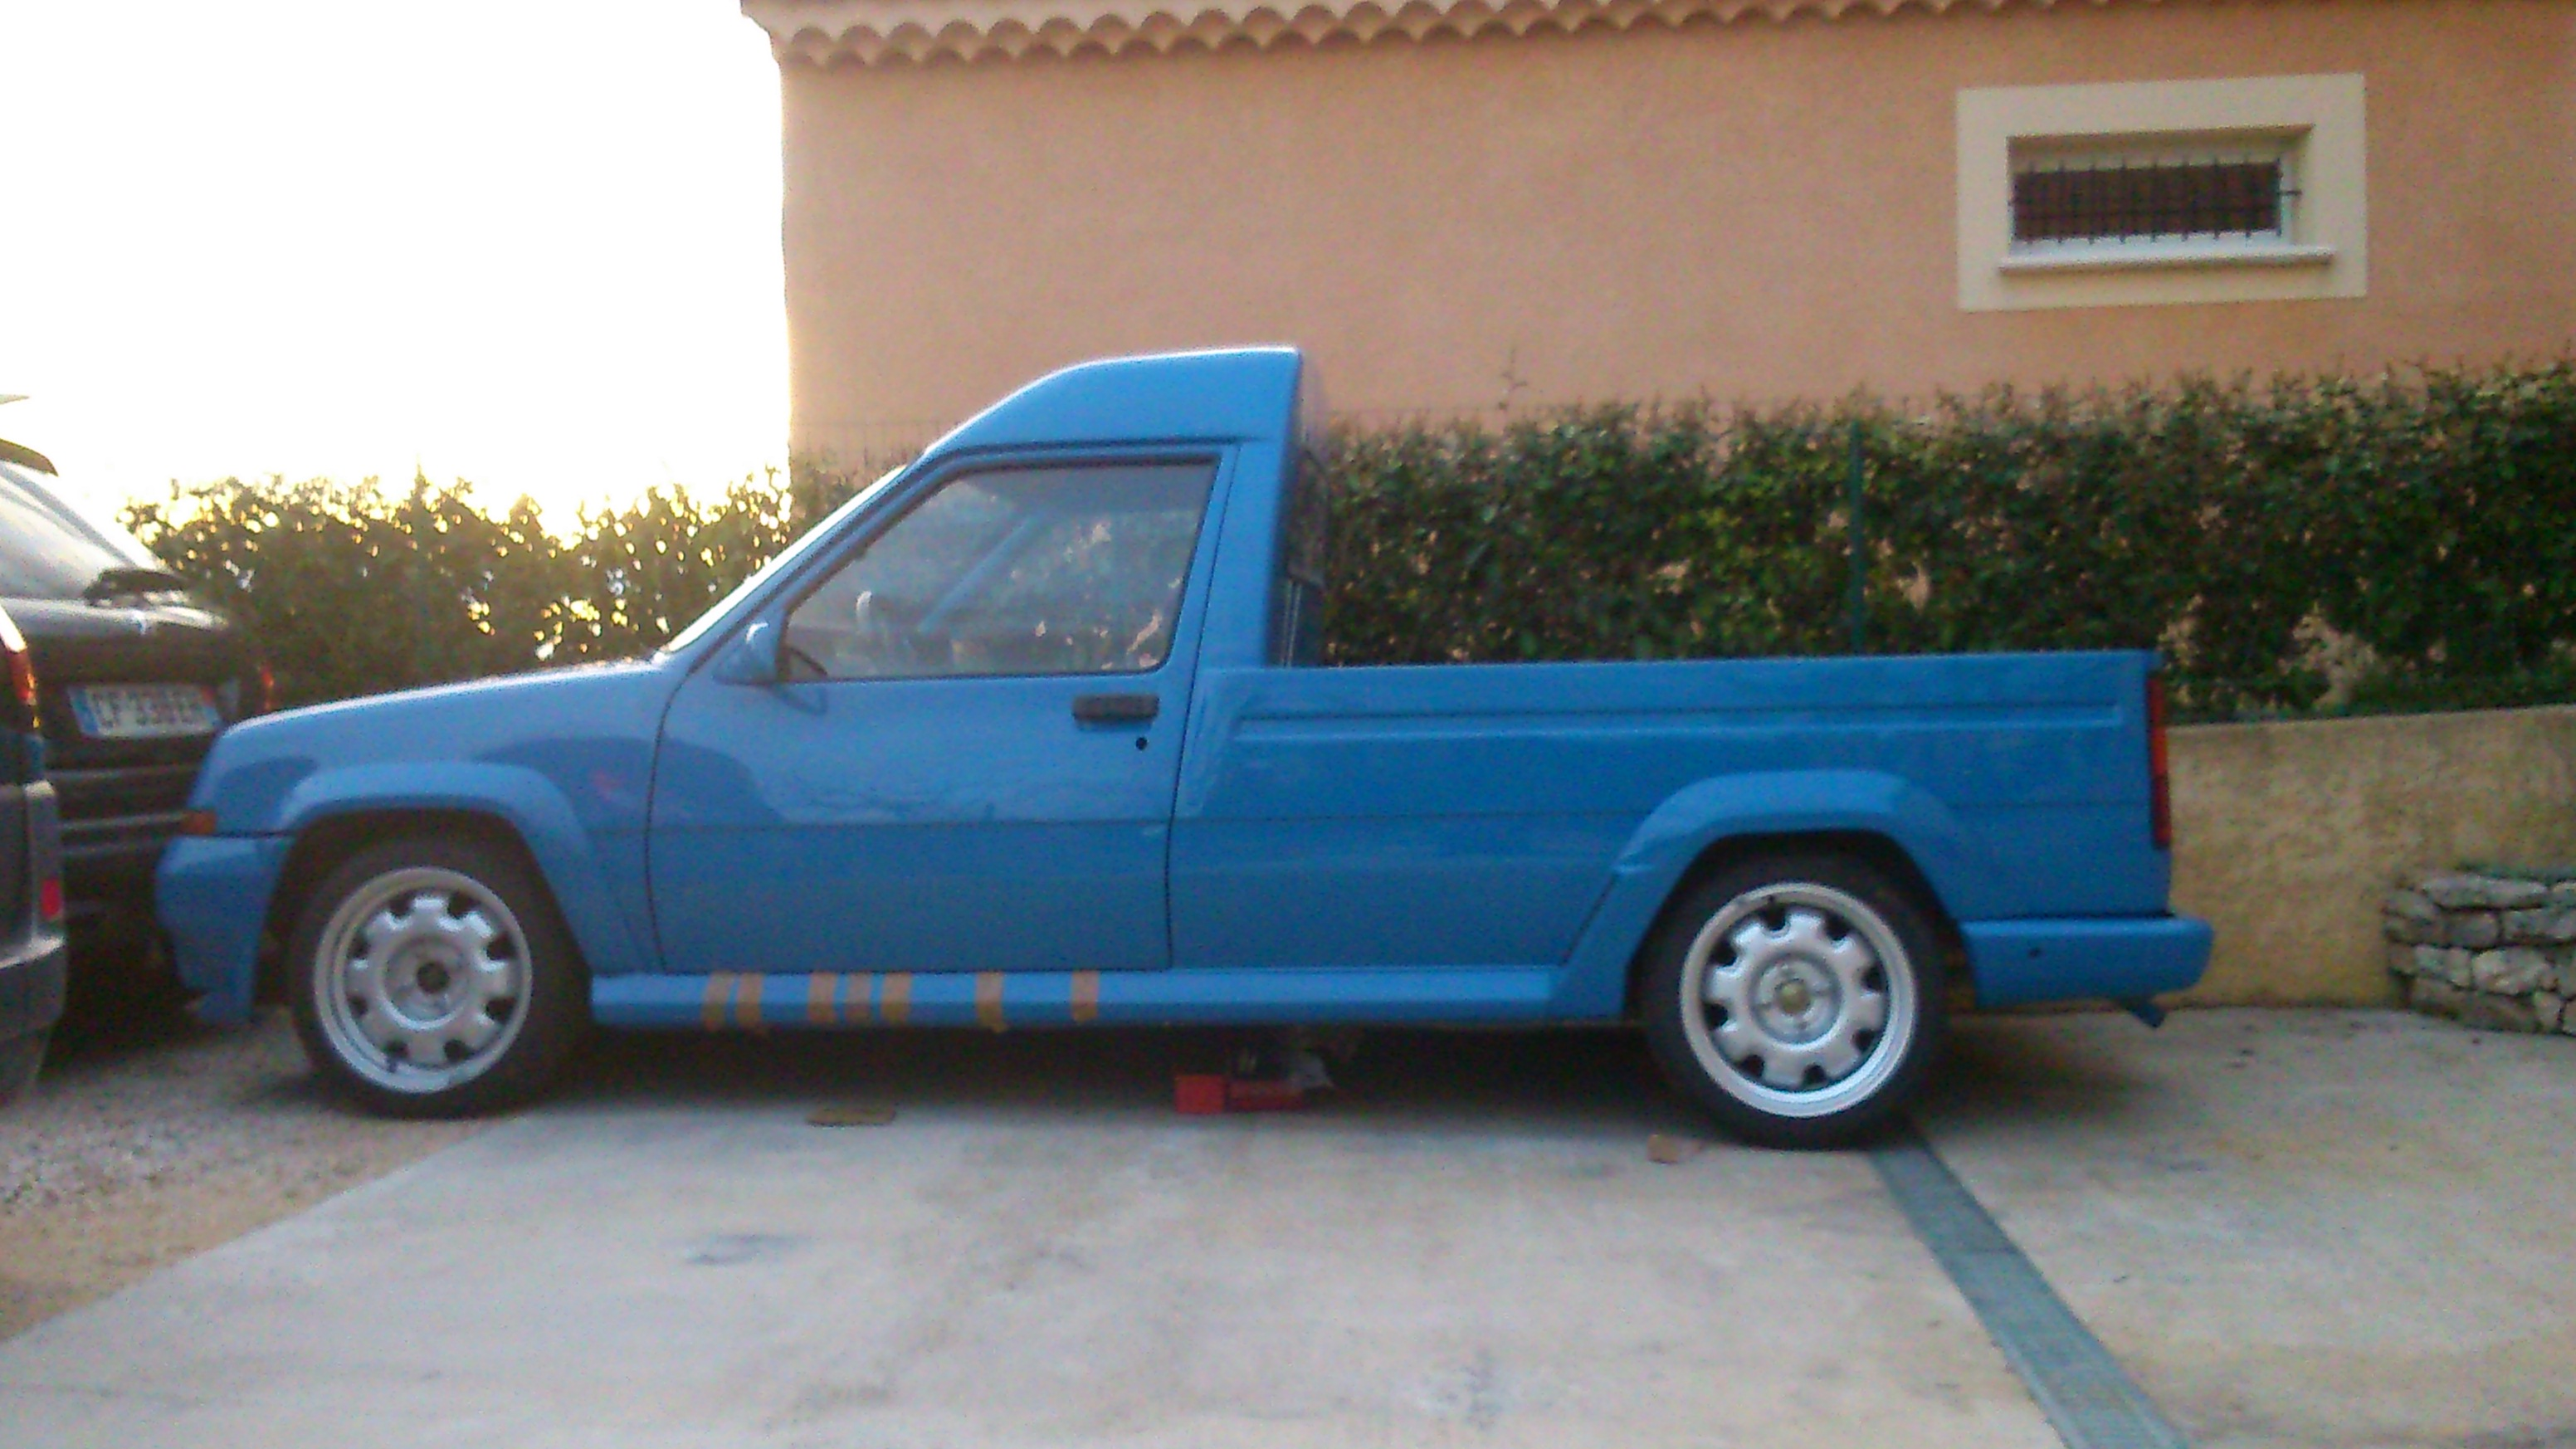 Express Pick Up Page 2 Pr 233 Paration Compl 232 Te Et Voitures De Membres Forum Tuning